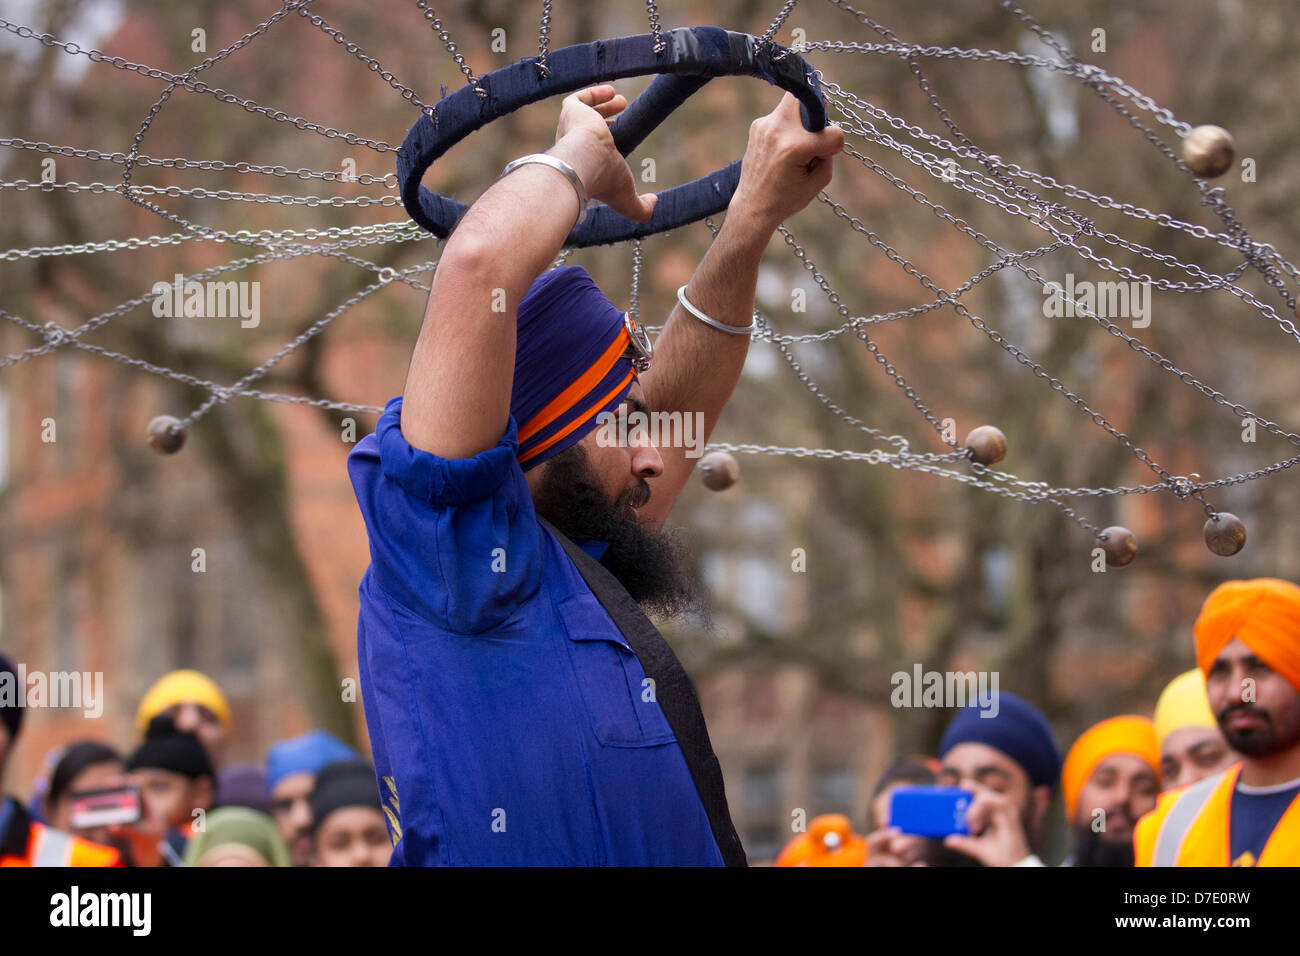 Manchester, UK. 5th May, 2013.  A Nihang or Sikh warrior performs 'Gatkha', a traditional form of martial arts. - Stock Image